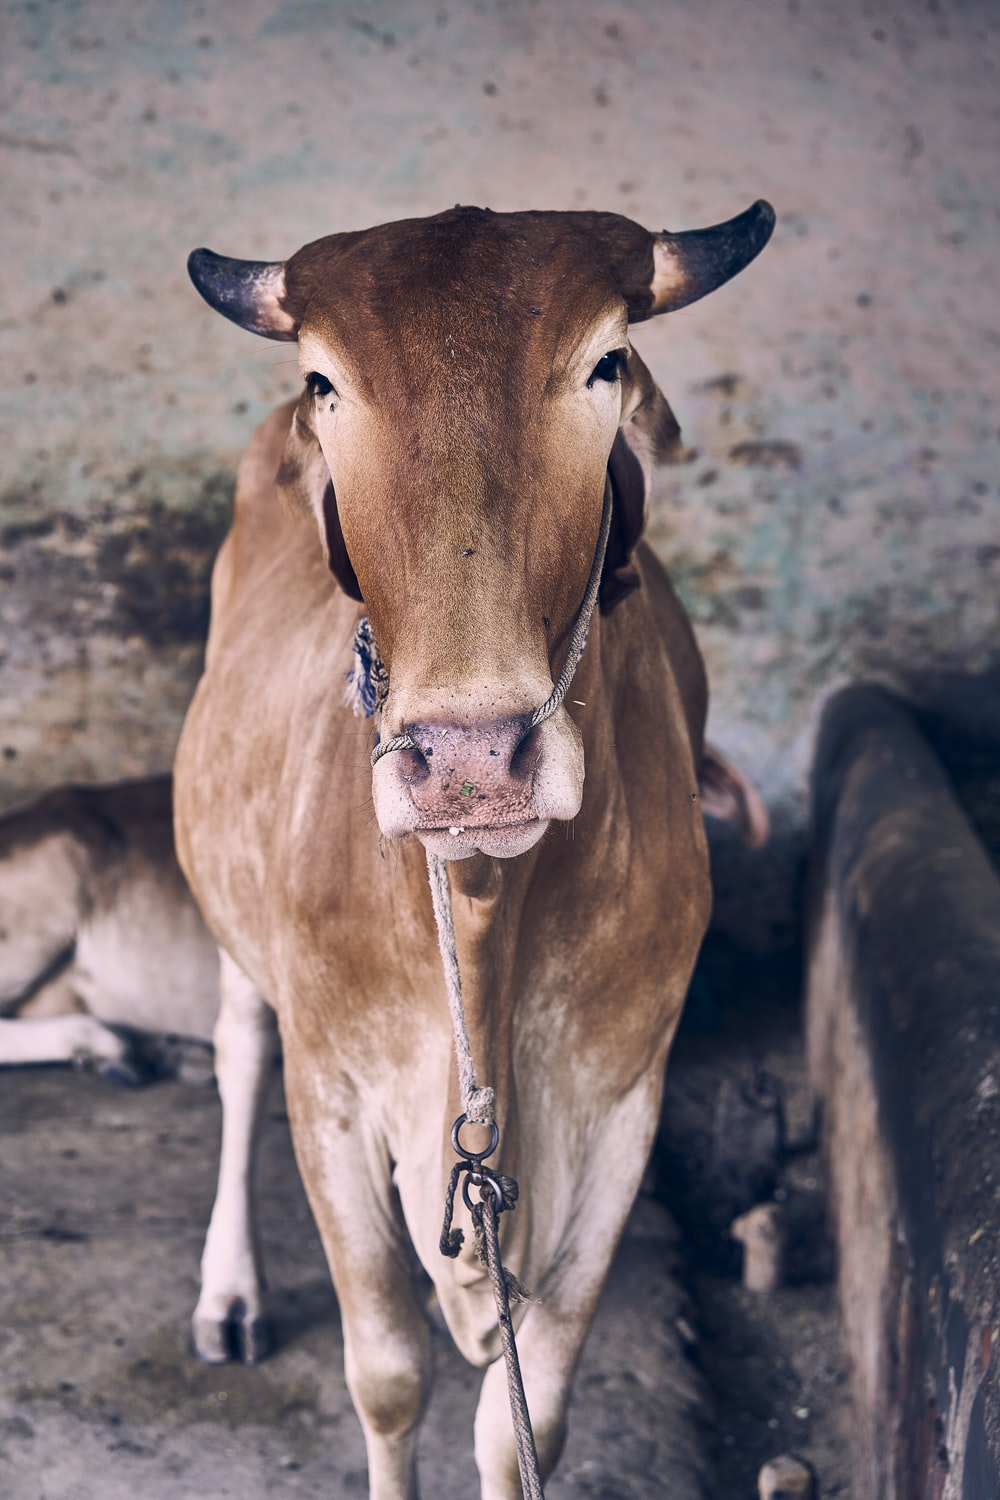 brown cow with silver chain necklace